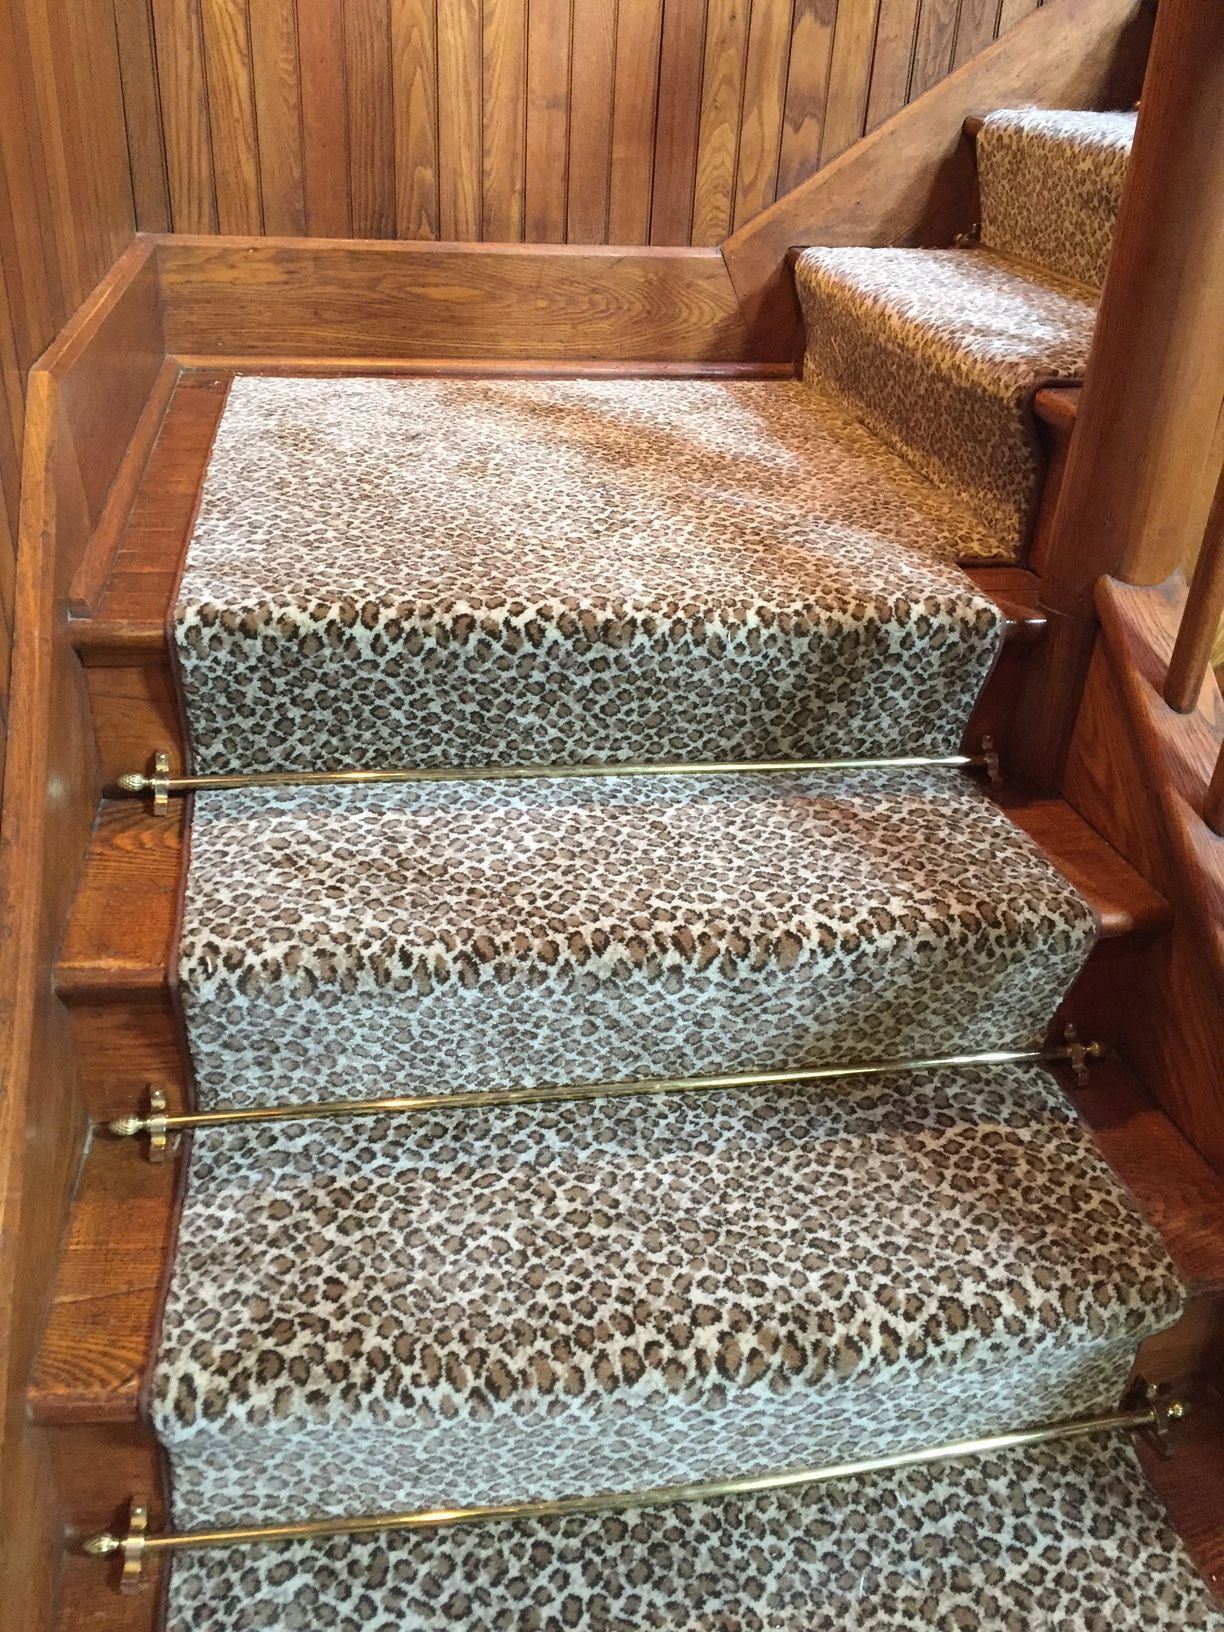 Animal Print Carpet On Steps As Runner With Decorative Stair Rods Rugsoncarpet Stair Runner Carpet Animal Print Rugs Living Room Stair Runner